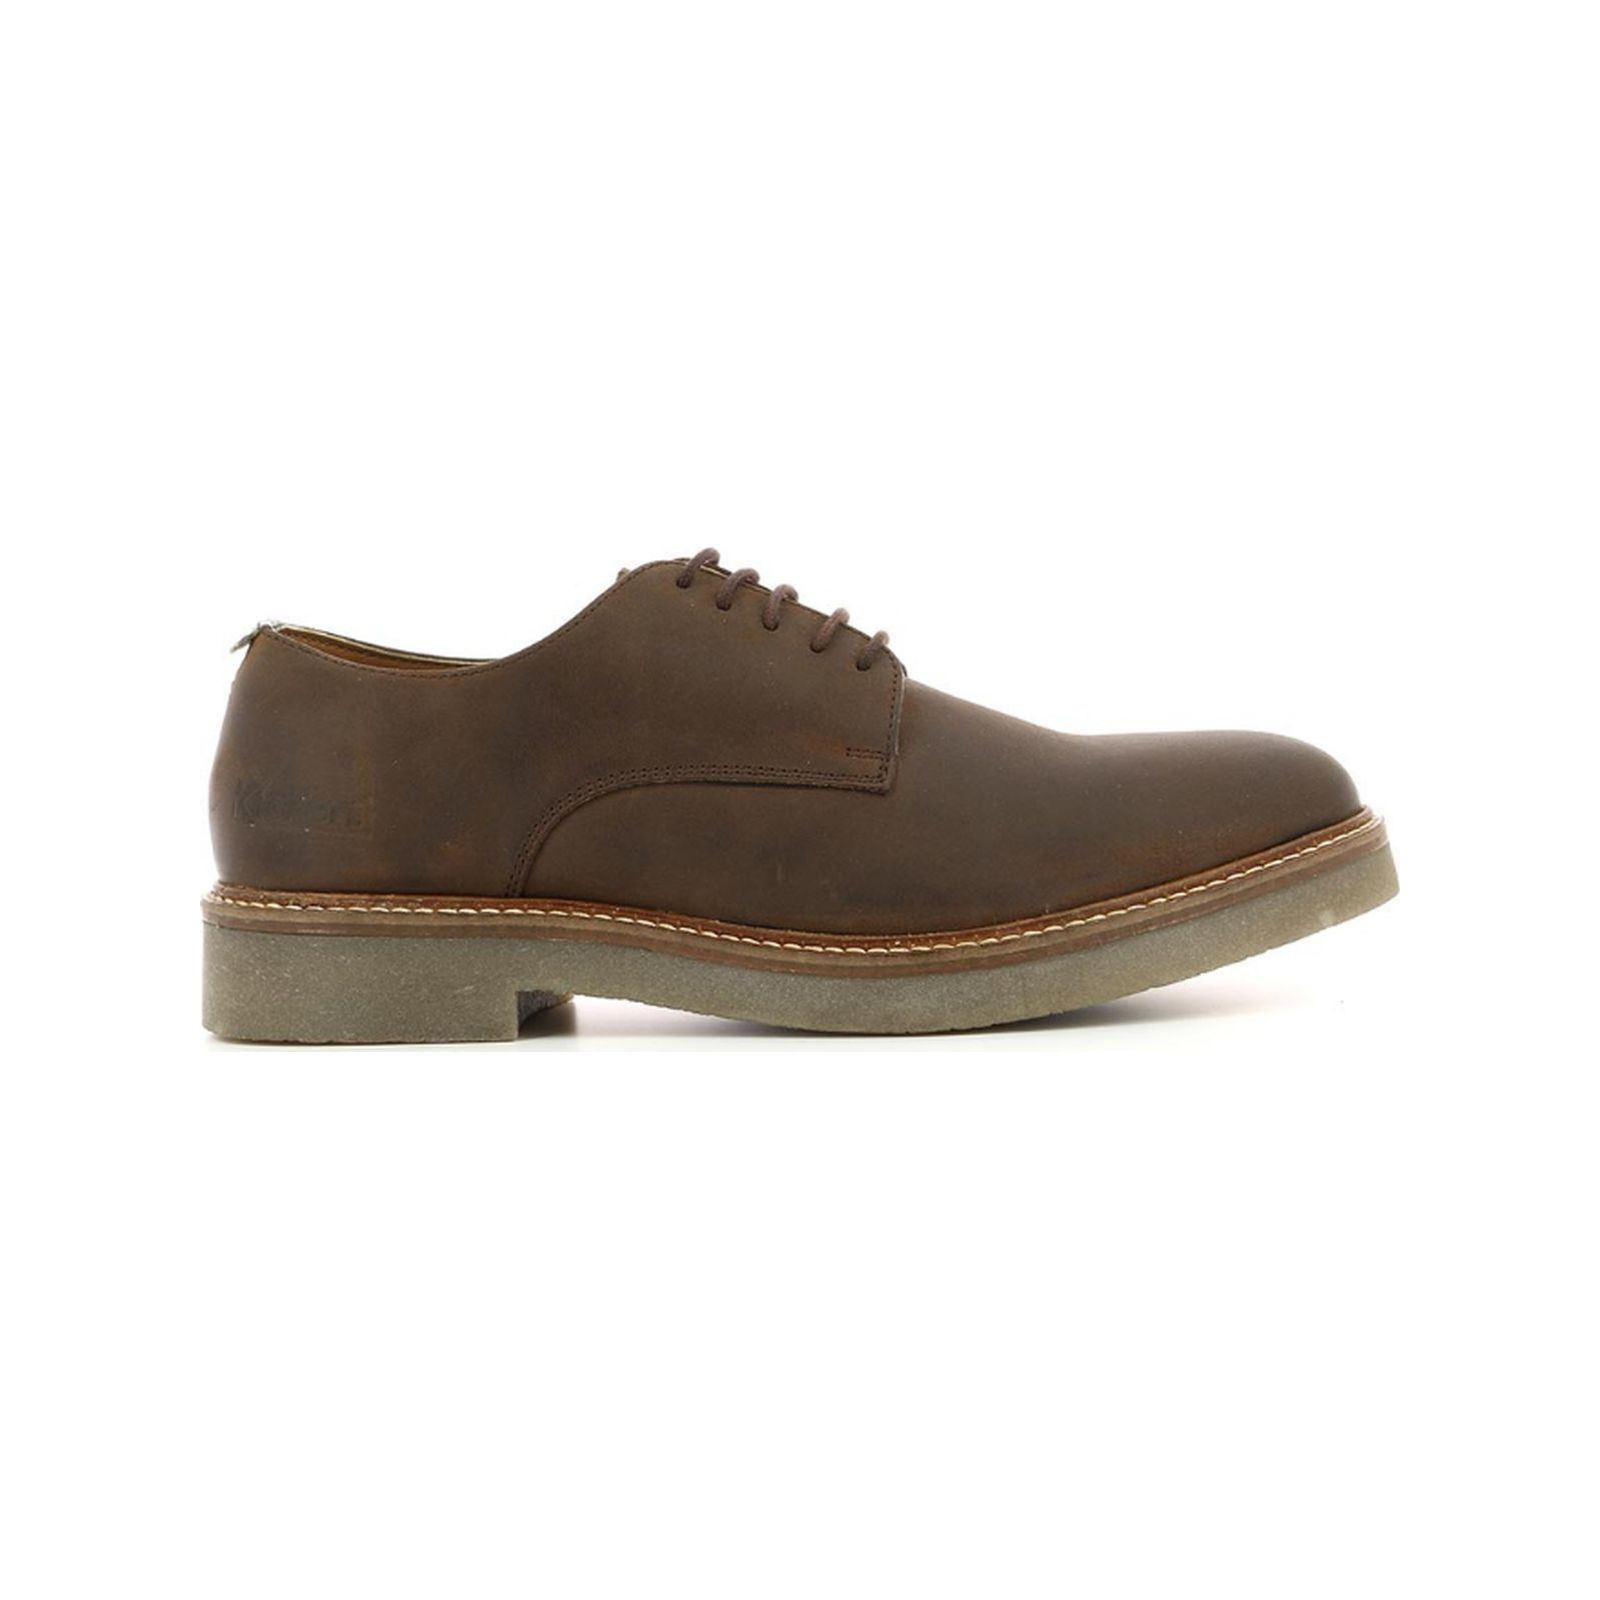 Kickers Oxfork - Derbies en cuir - marron   BrandAlley e4ff01bc8e79